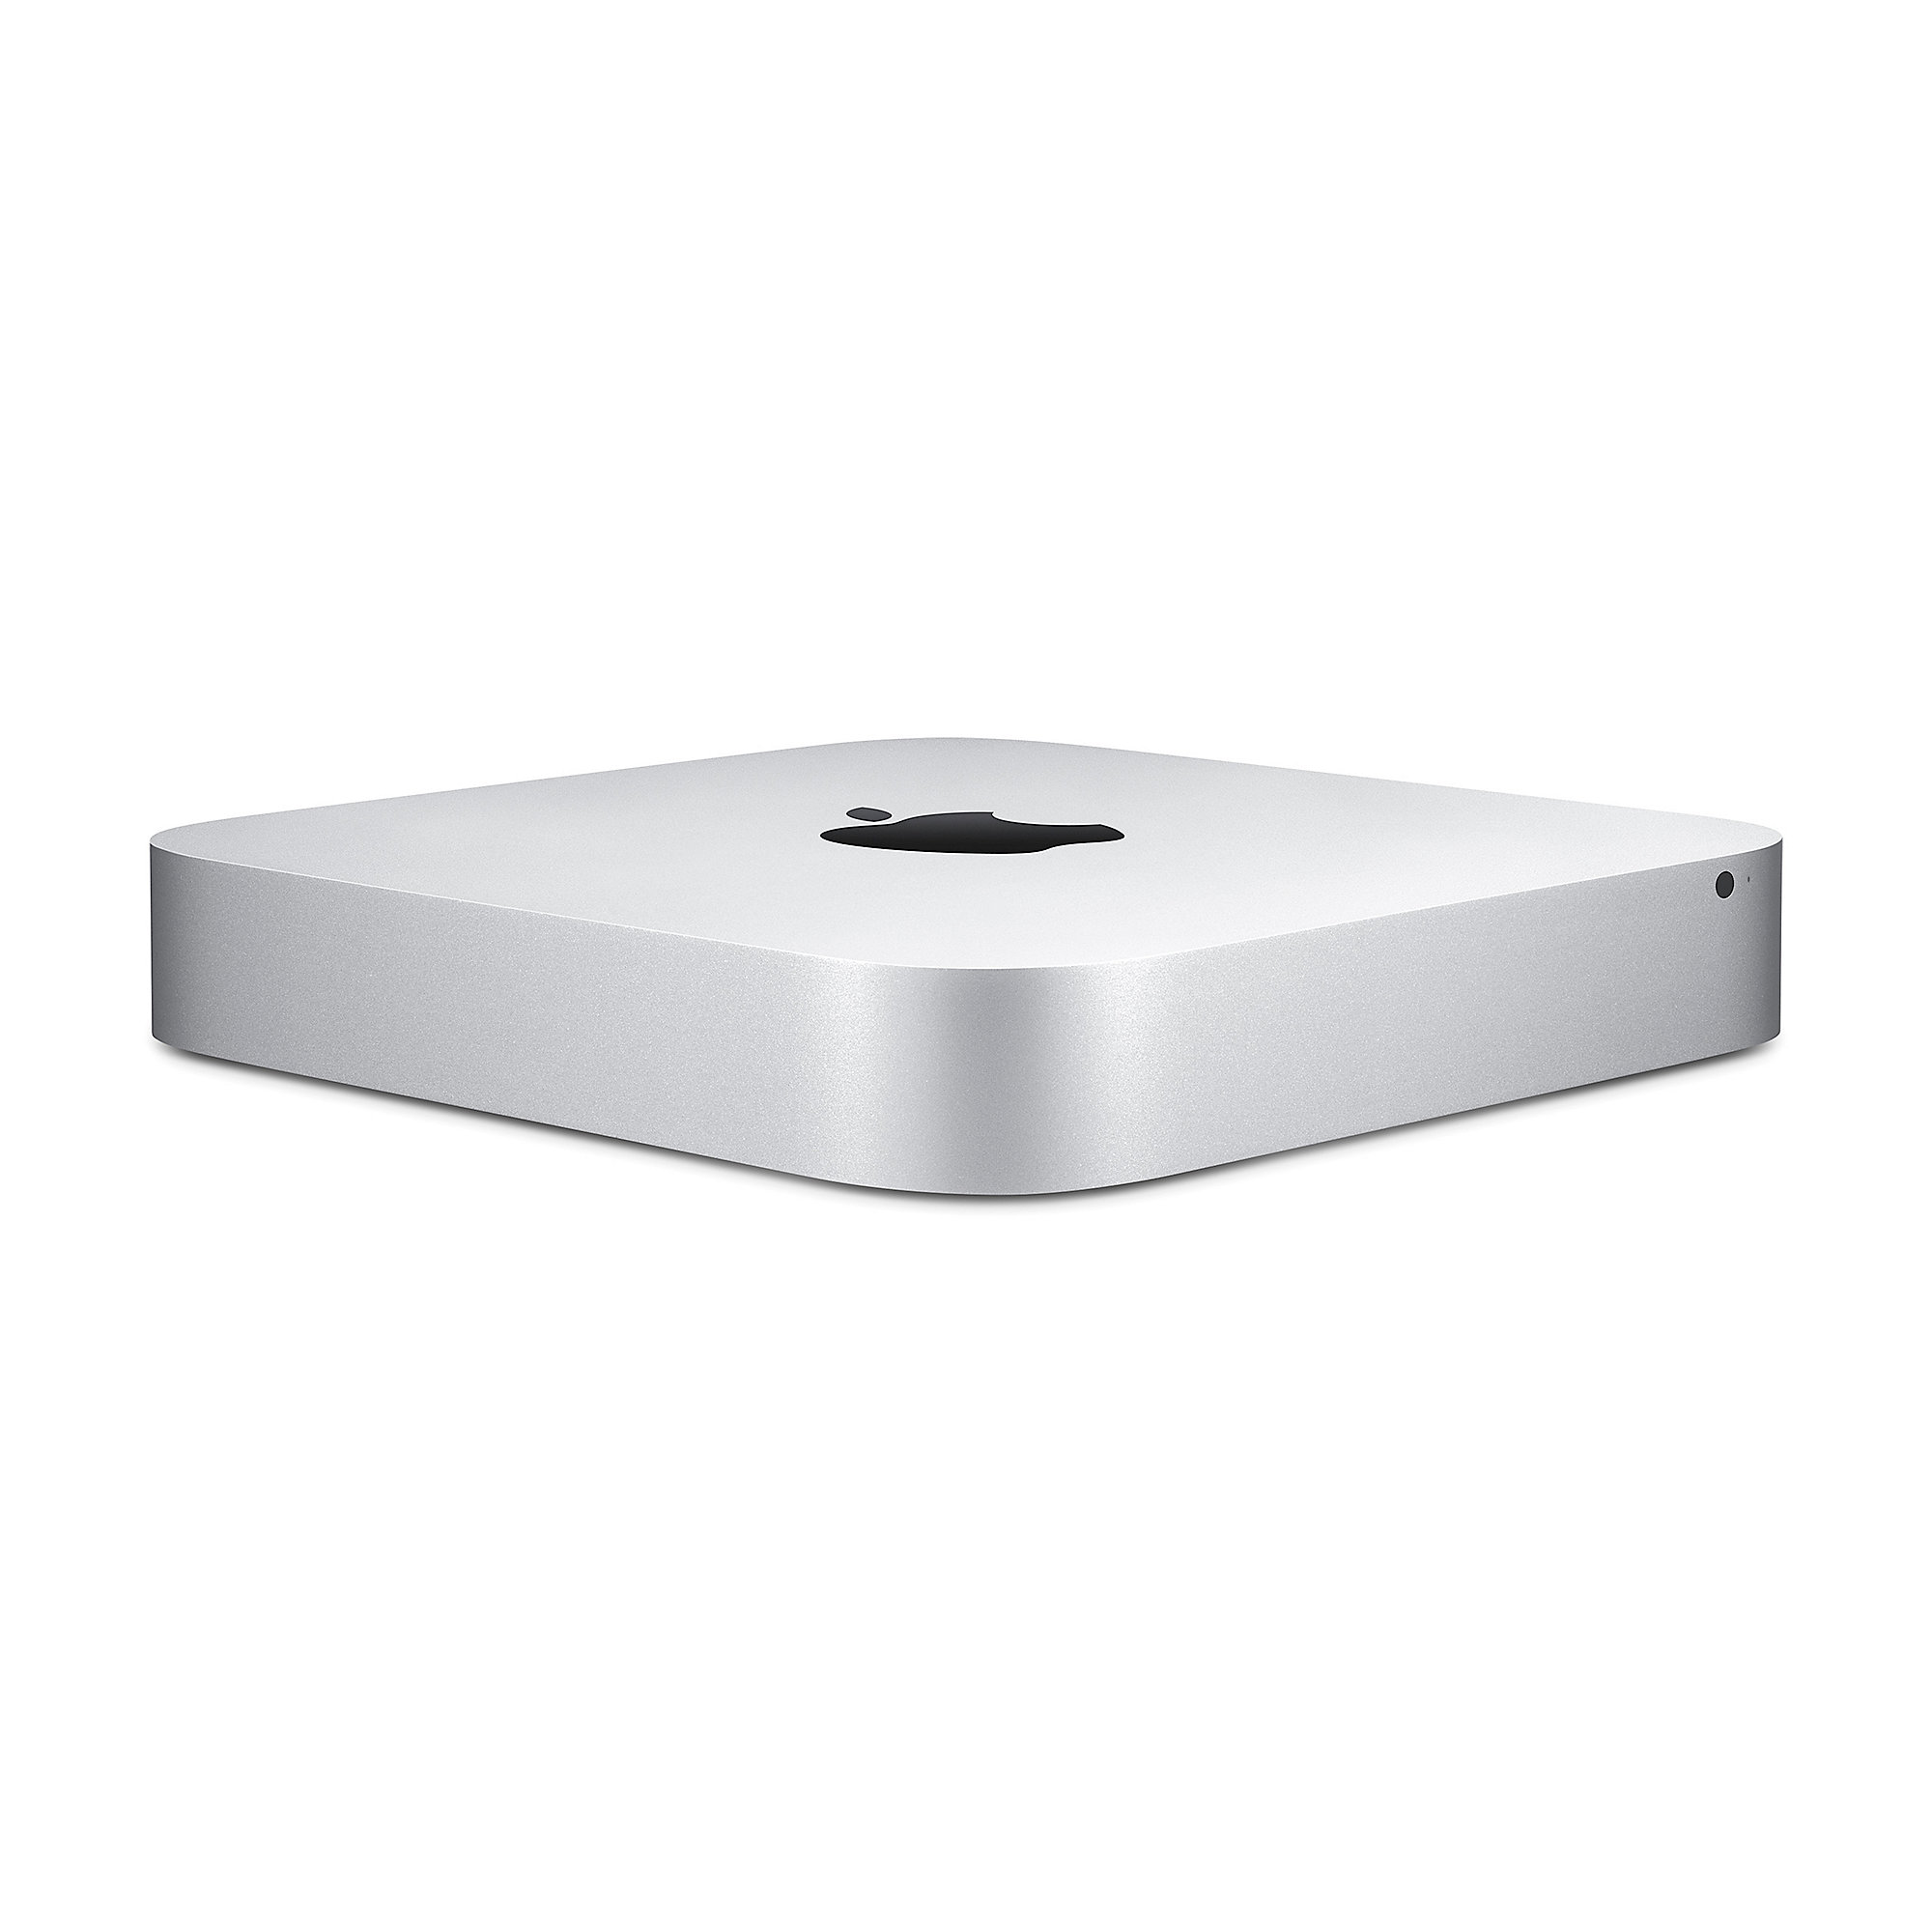 Apple Mac mini 3,0 GHz Intel Core i7 8 GB 256 GB SSD IRIS BTO